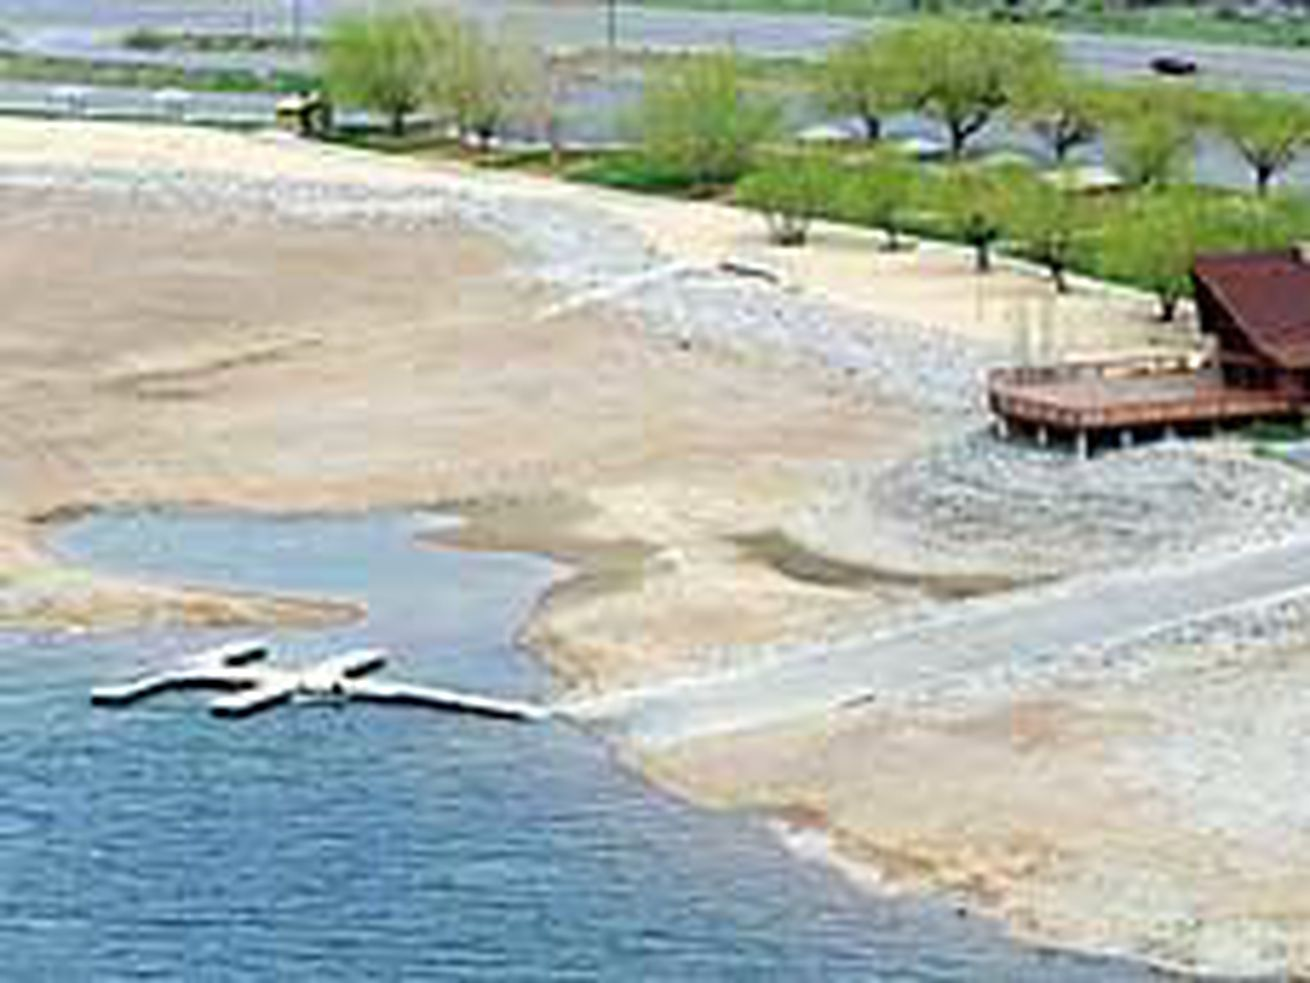 Boaters must contend with an encroaching shoreline near the marina at Deer Creek Reservoir.